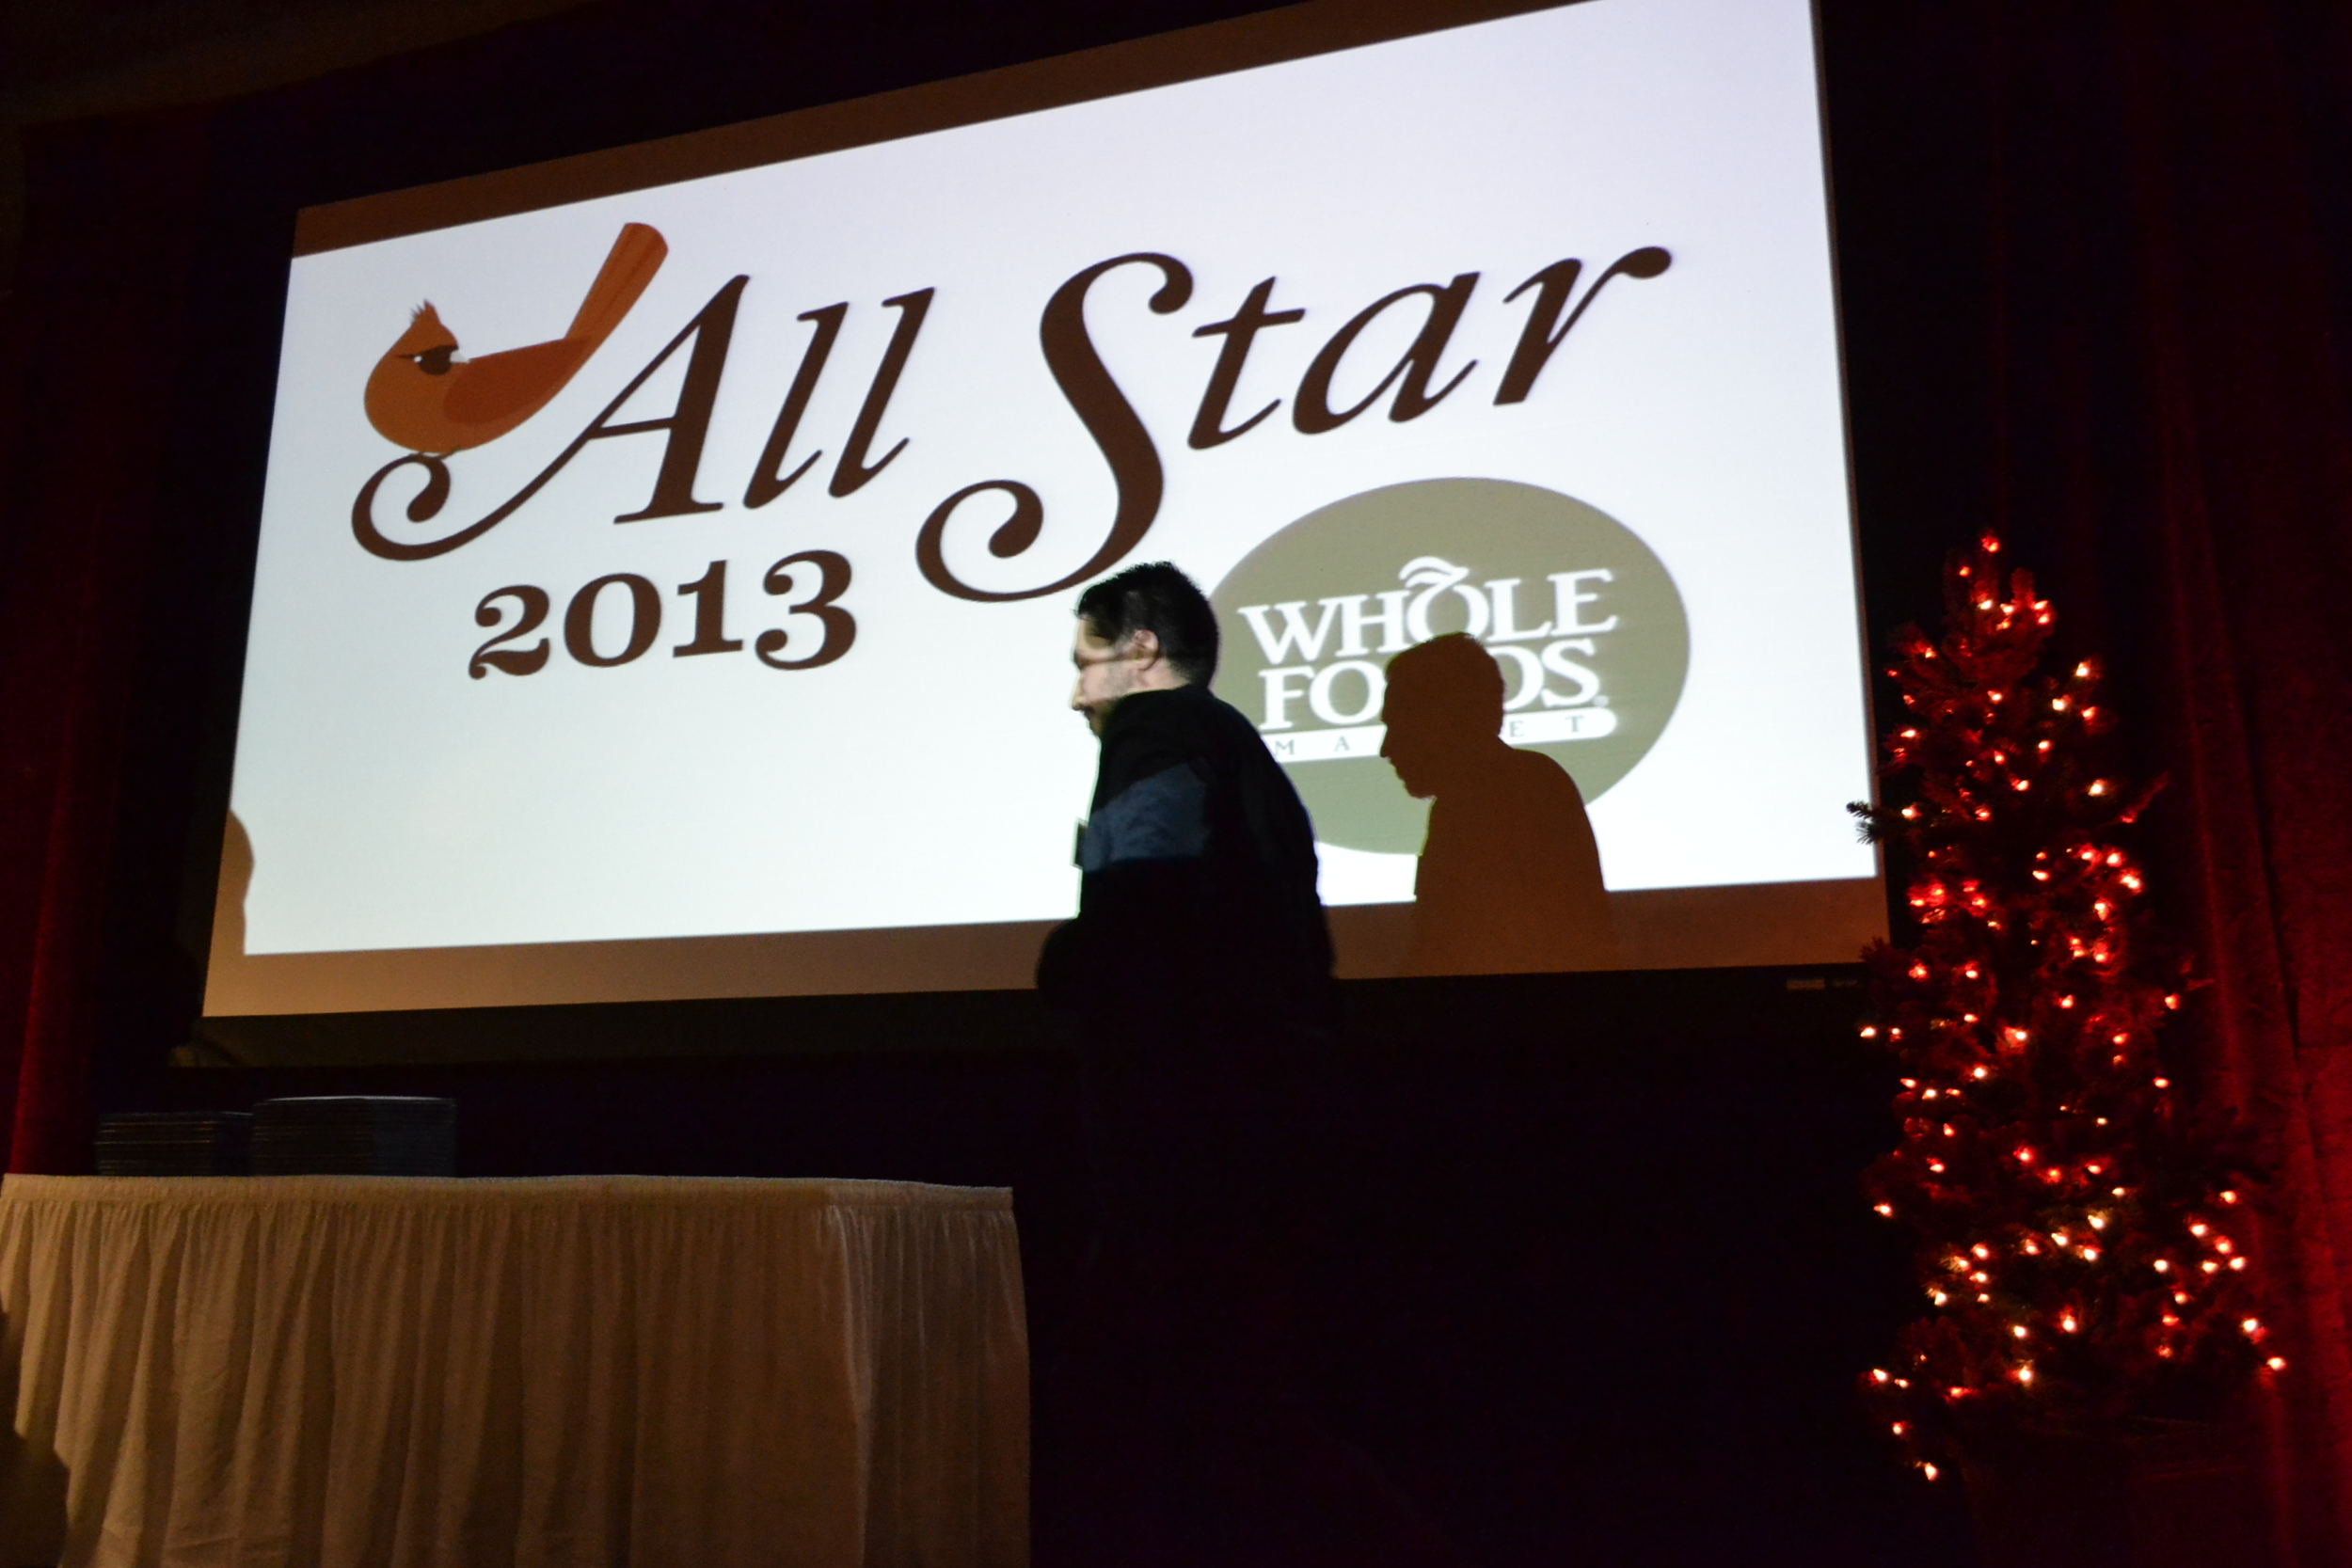 All Star Event 2013